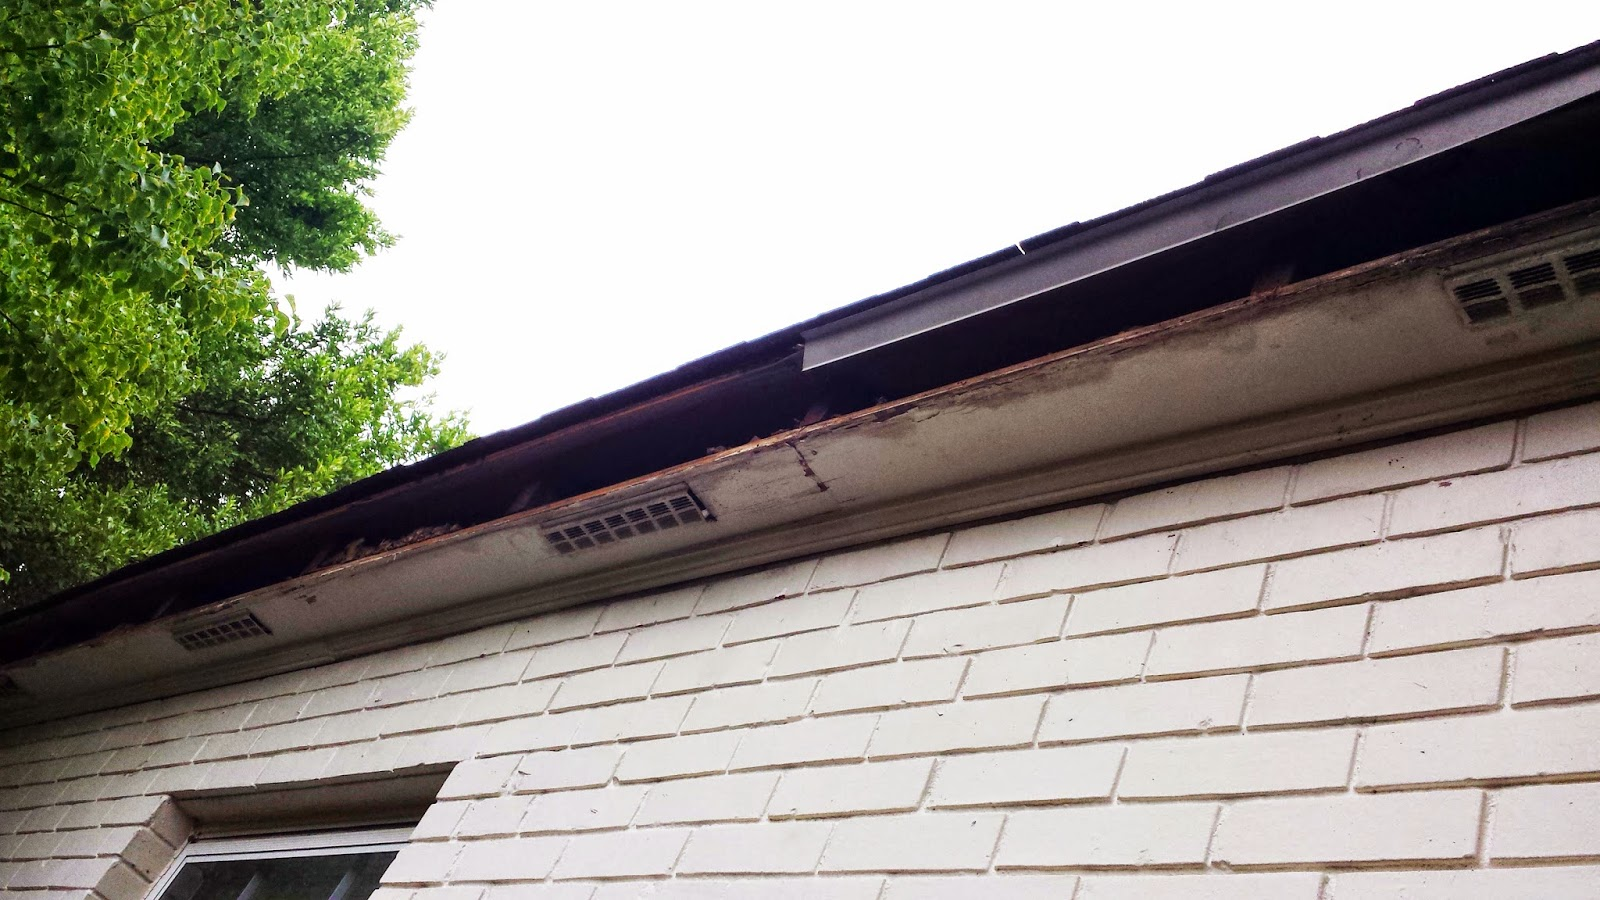 Replace fascia boards in sections - Using The Taping Knife Place It At The Crease Of The Drip Edge And The Shingle What Is Drip Edge Drip Edge Is The Shiny Metal That Flashes The Joint